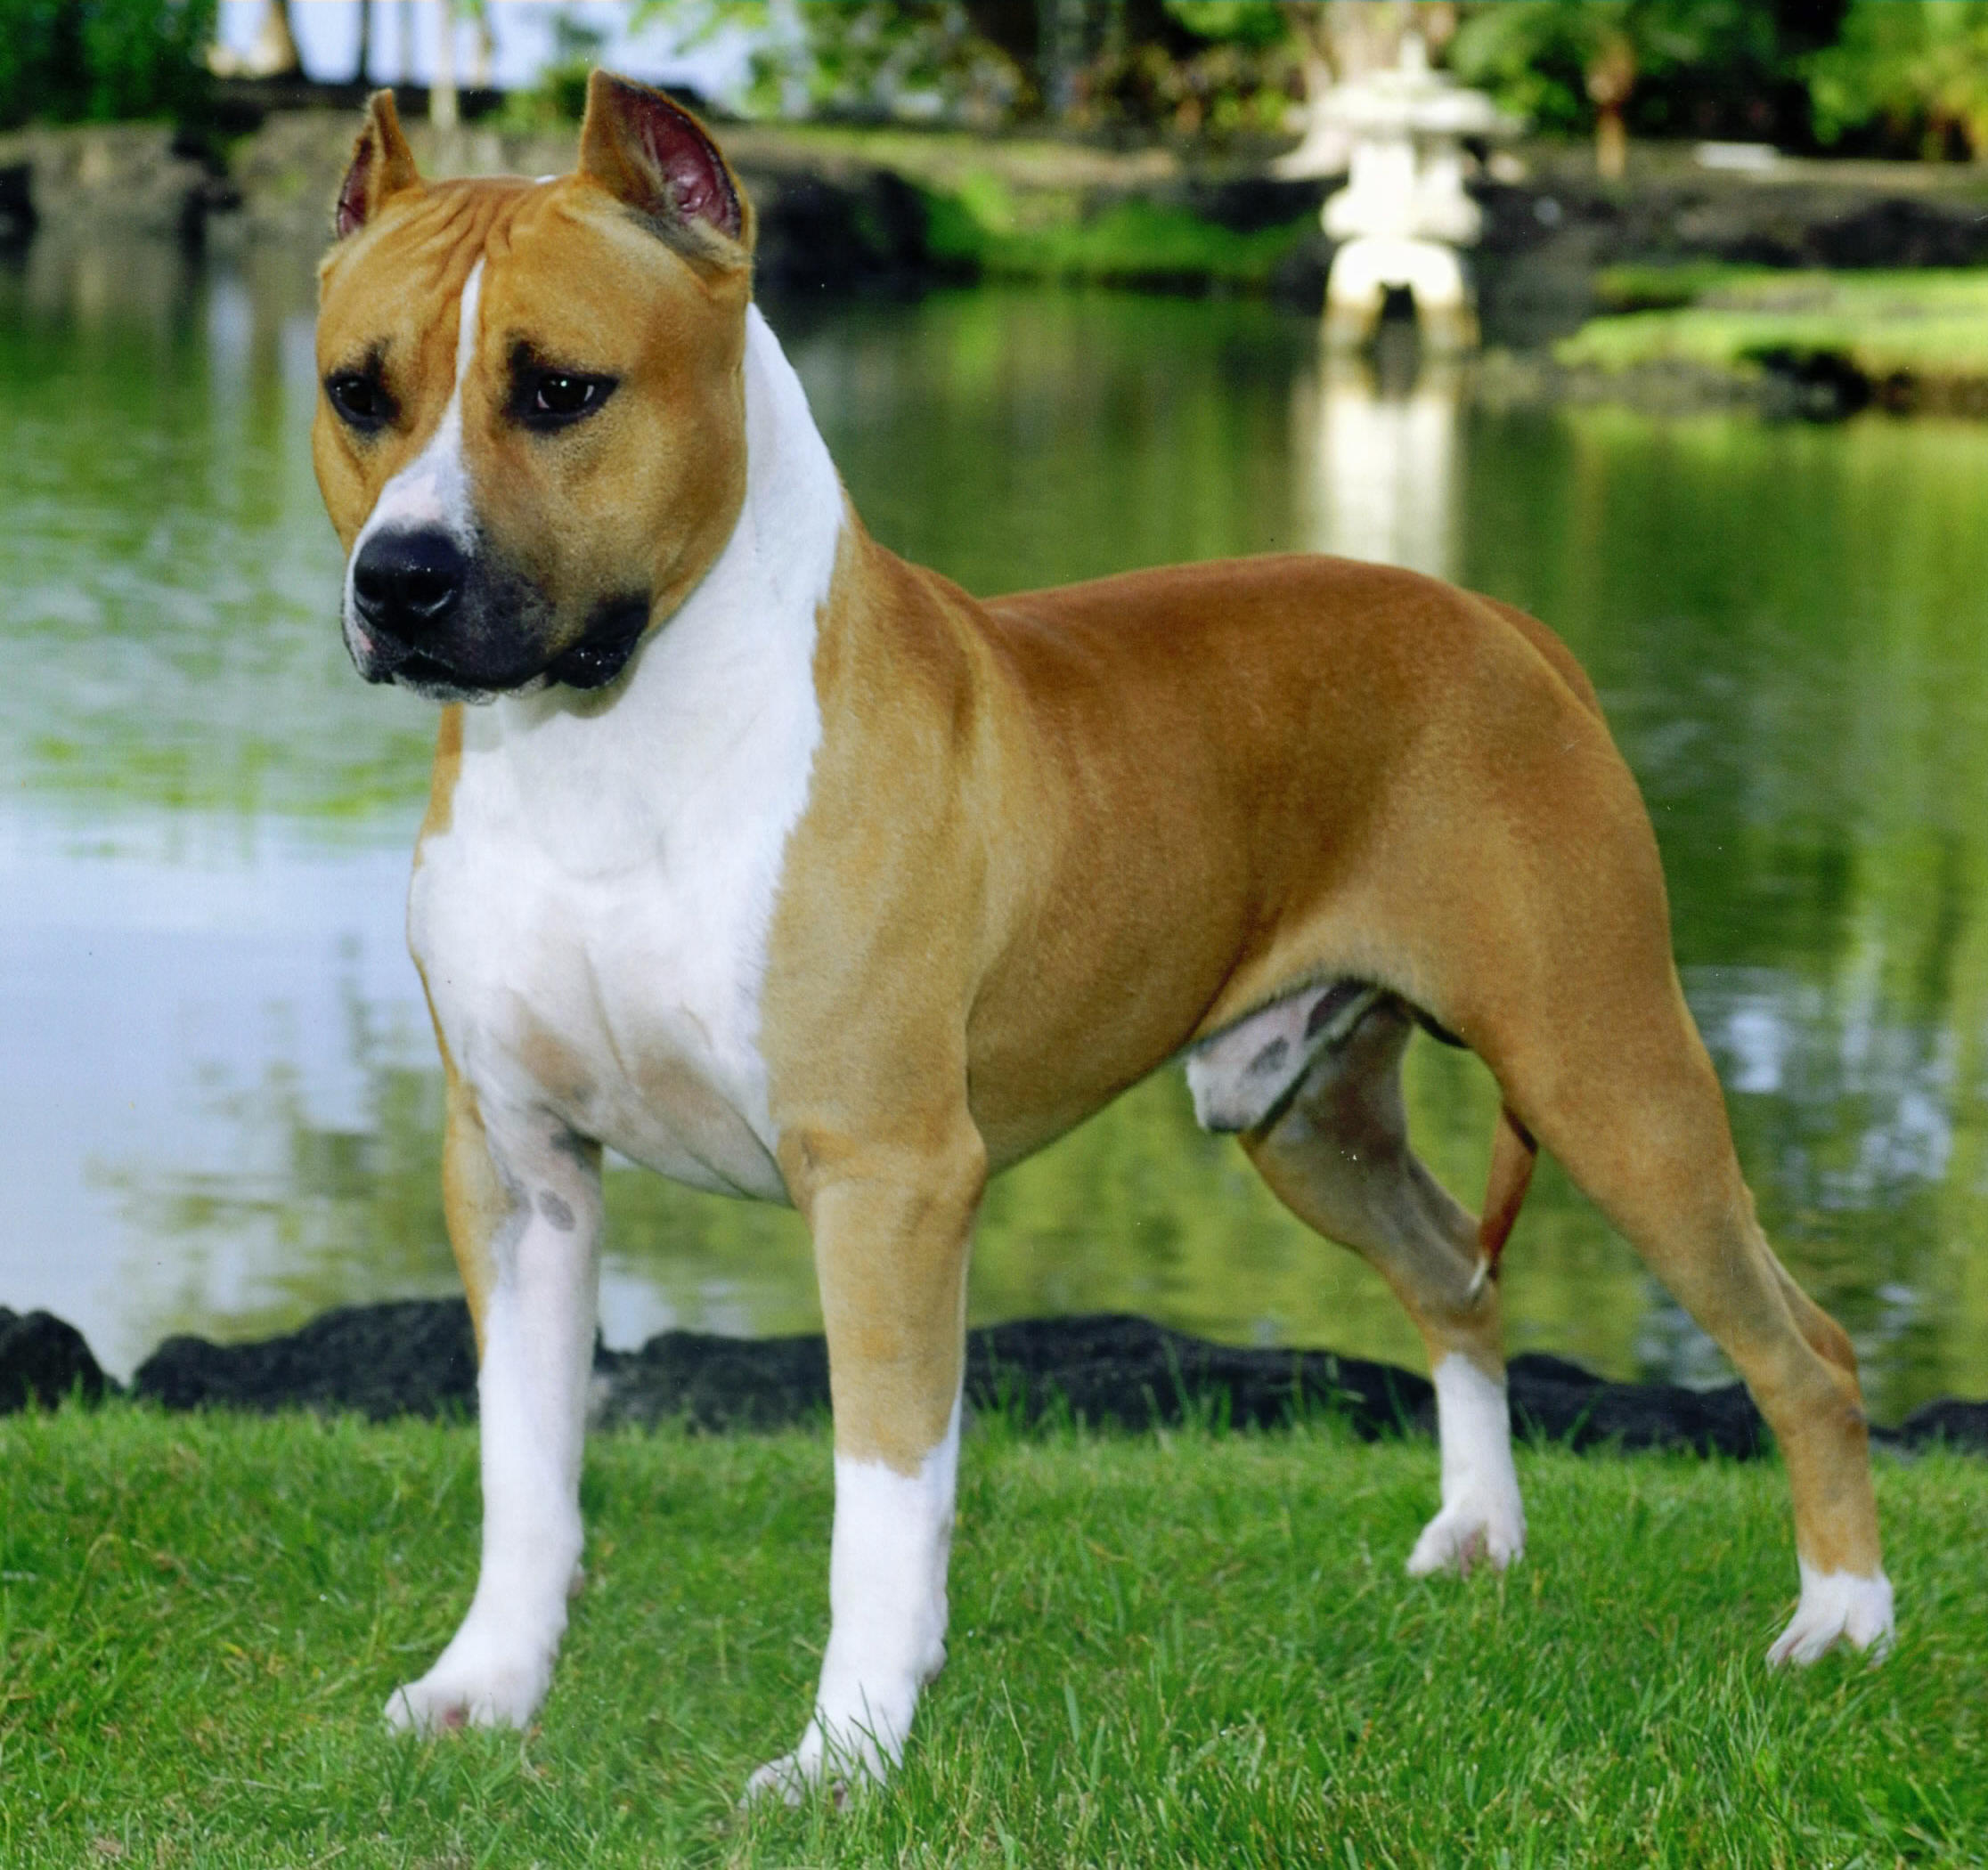 Add photos American Staffordshire Terrier on the lake in your blog: